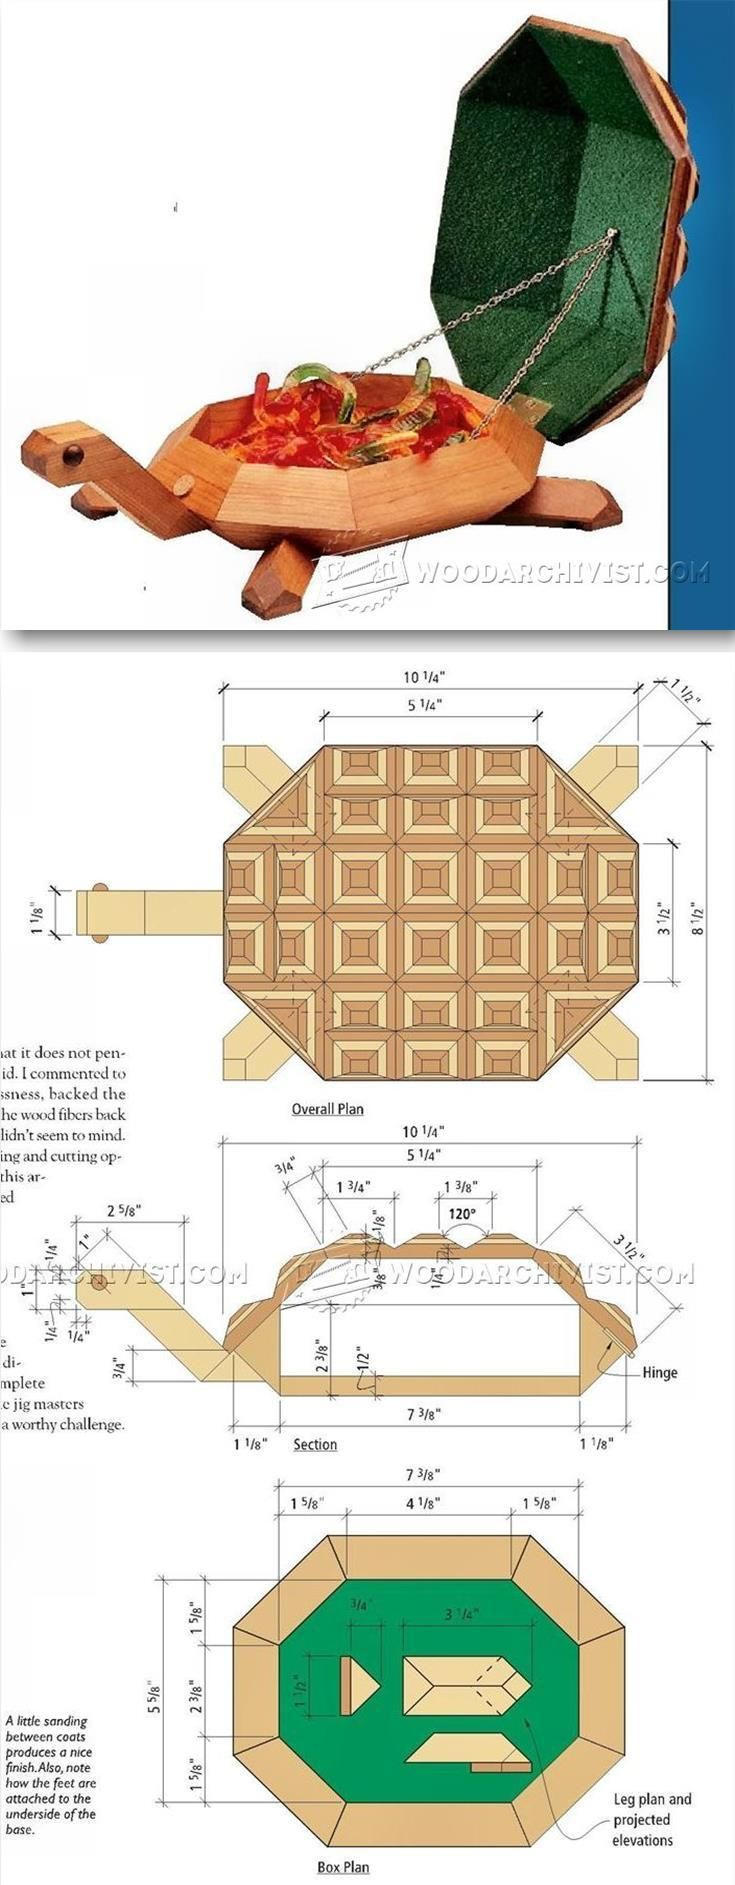 Turtule Box Plans - Woodworking Plans and Projects | WoodArchivist.com